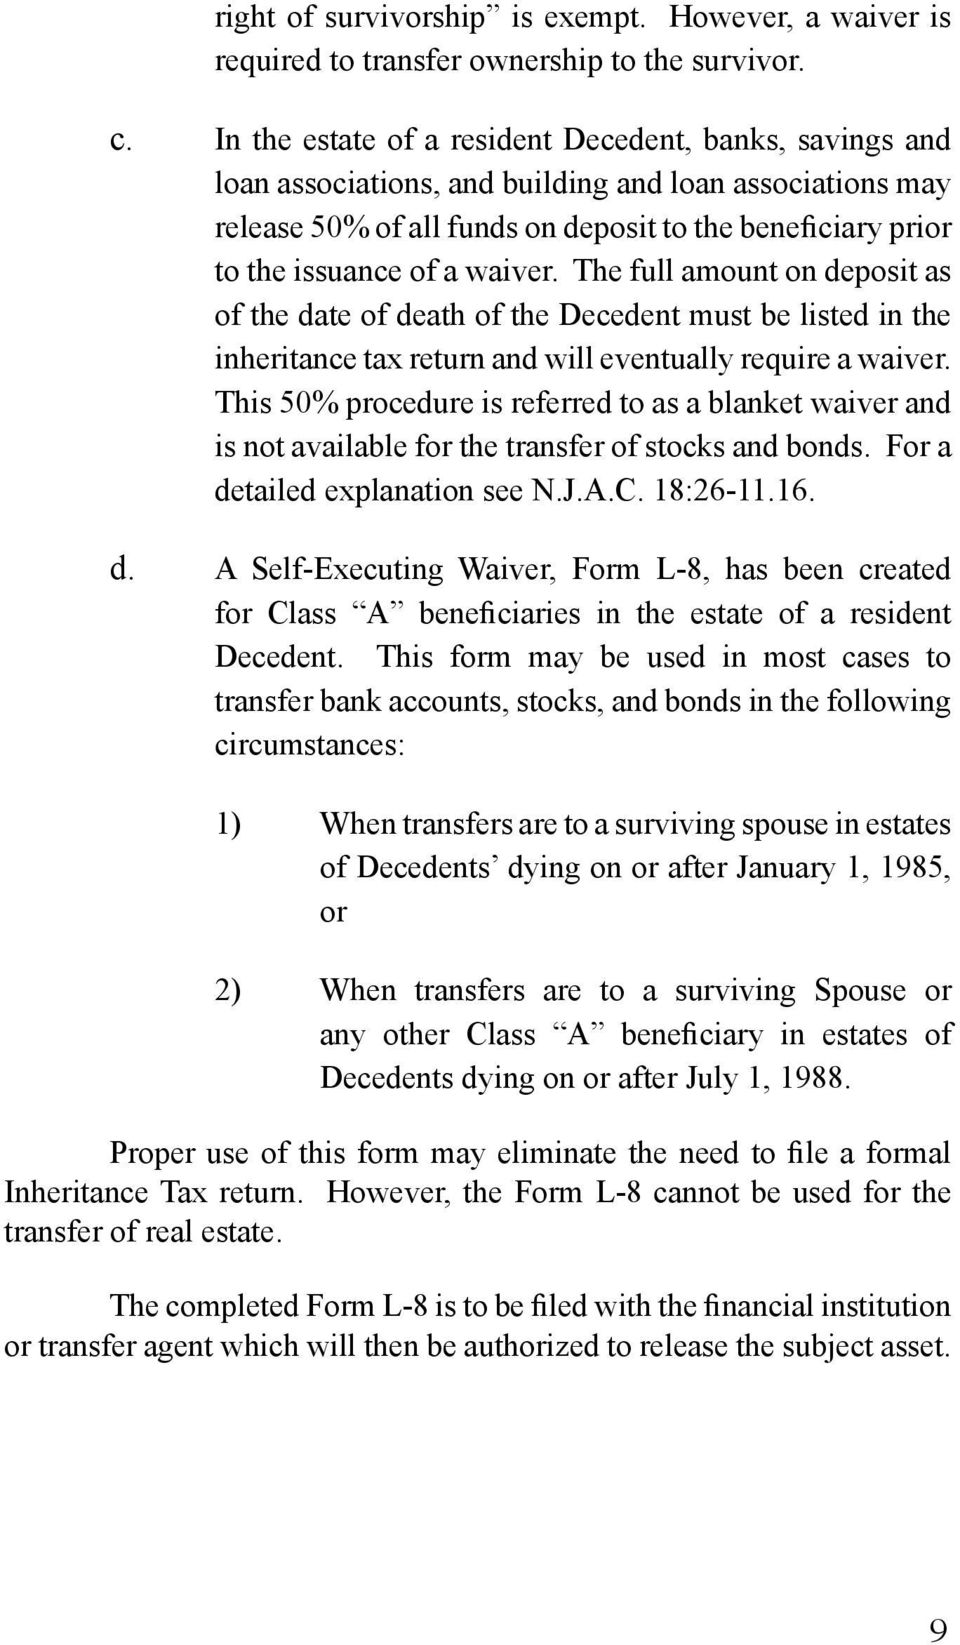 waiver. The full amount on deposit as of the date of death of the Decedent must be listed in the inheritance tax return and will eventually require a waiver.